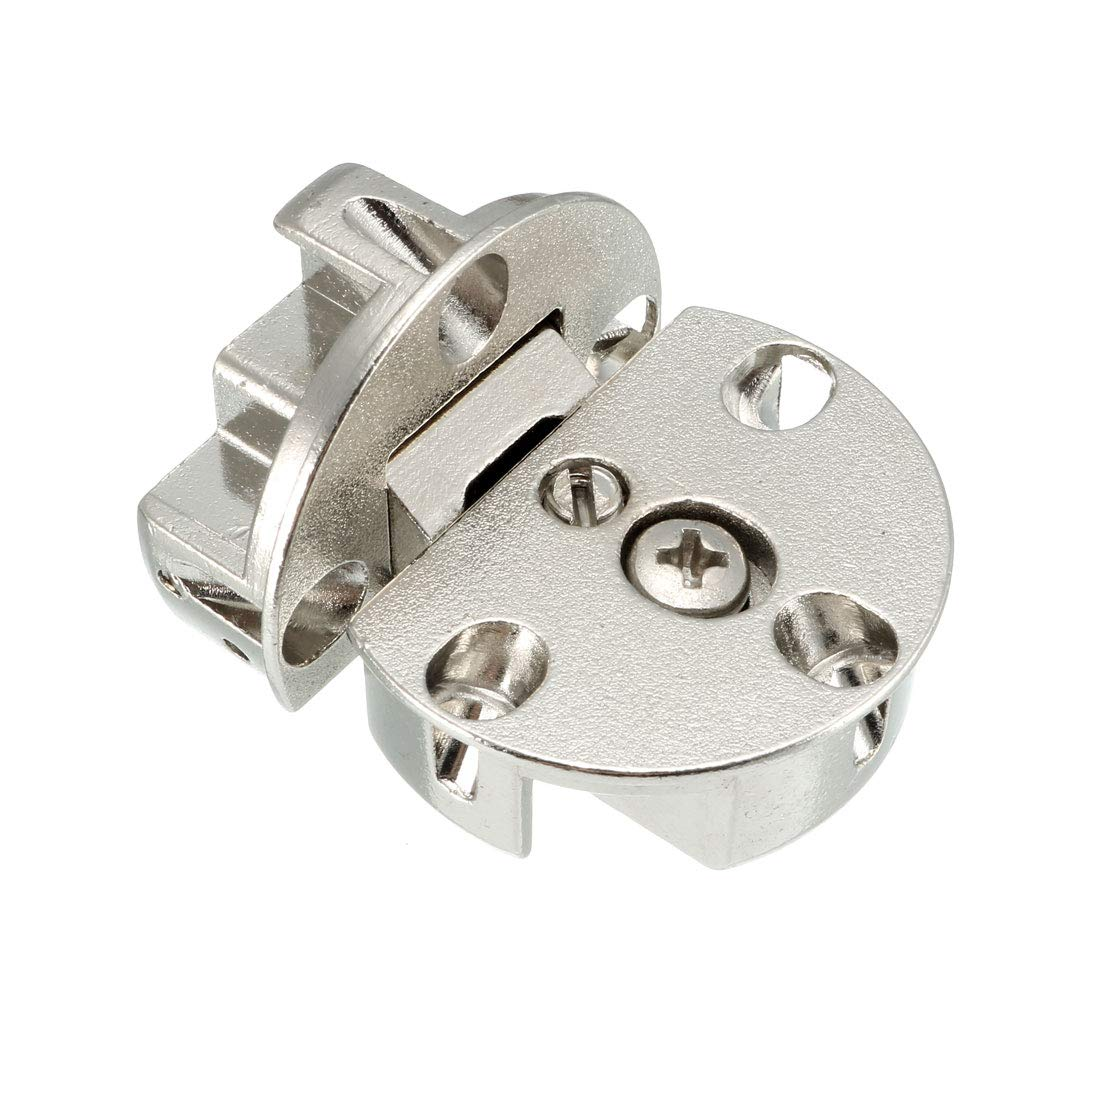 uxcell 4set 59mm Stainless Steel 360 Degree Rotating Door Pivot Hinge Silver Tone